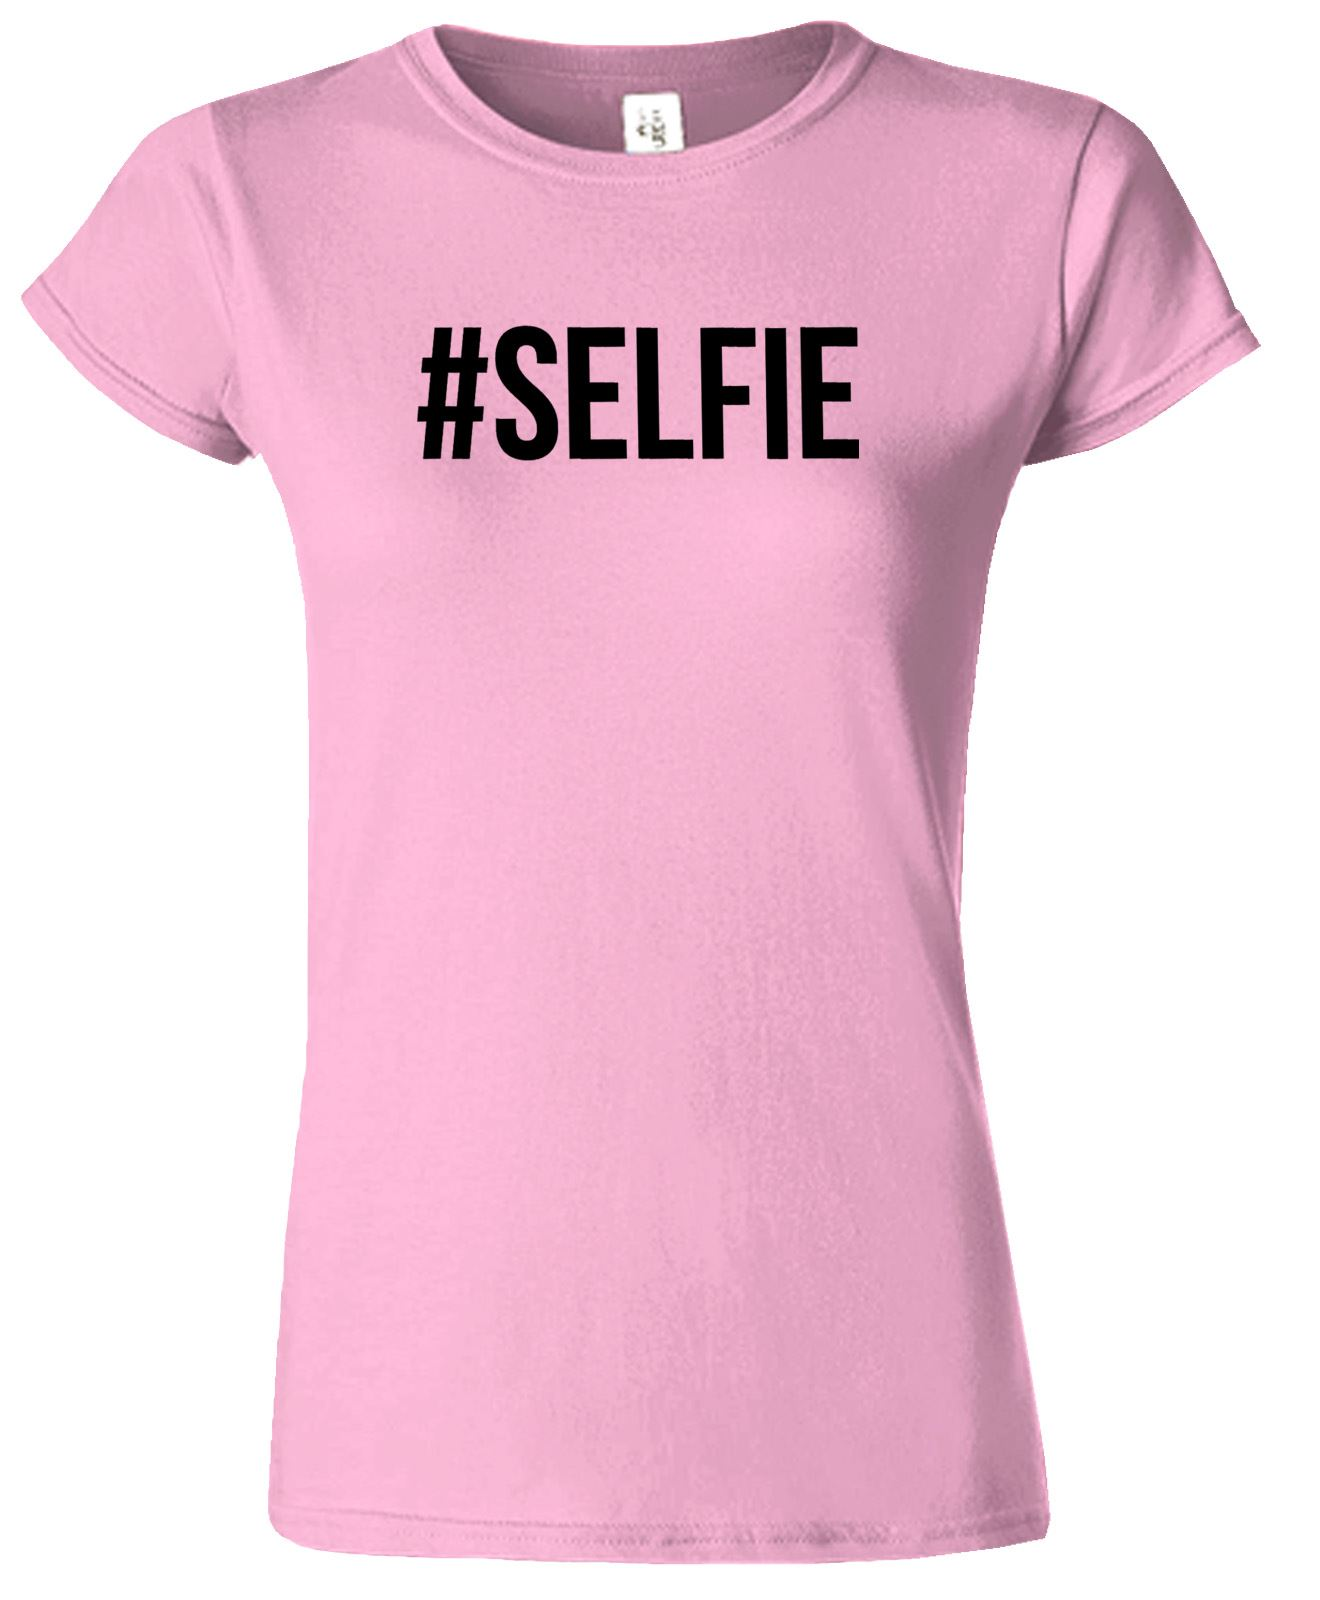 new style selfie print tee shirt xxl xl m l s new look woman girls tee shirt ebay. Black Bedroom Furniture Sets. Home Design Ideas